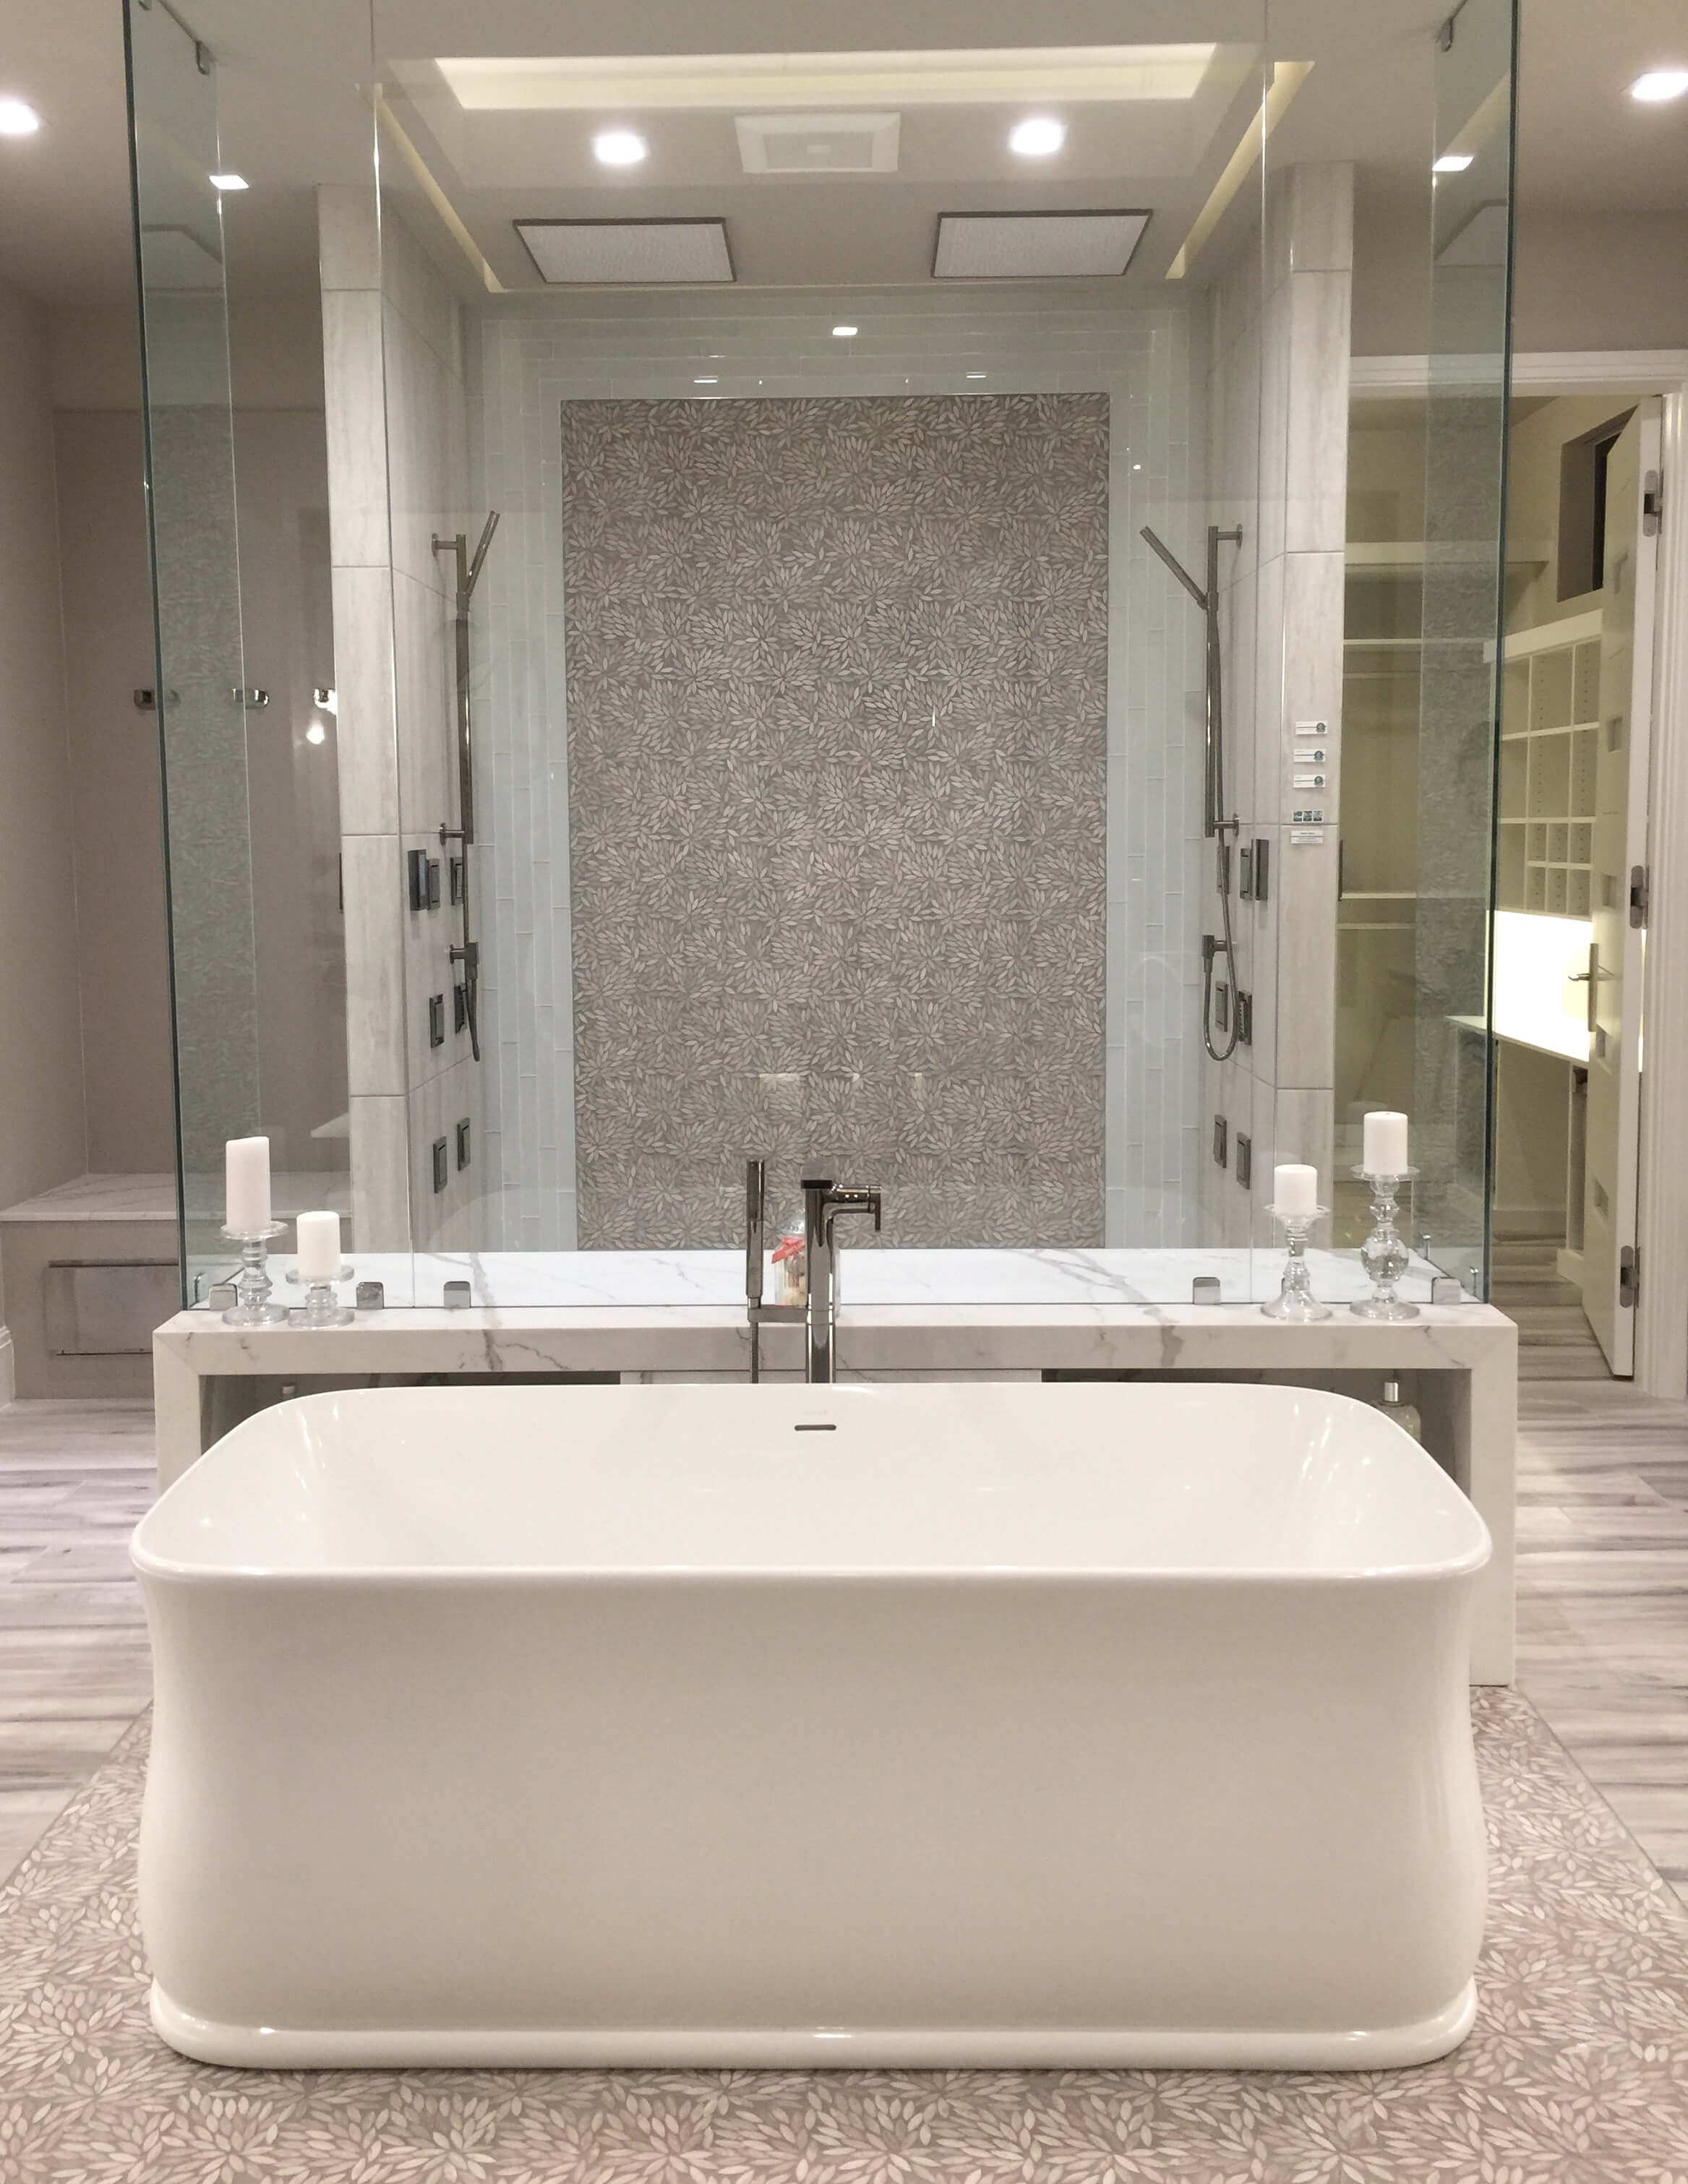 Large shower from  The New American Home - KBIS 2018